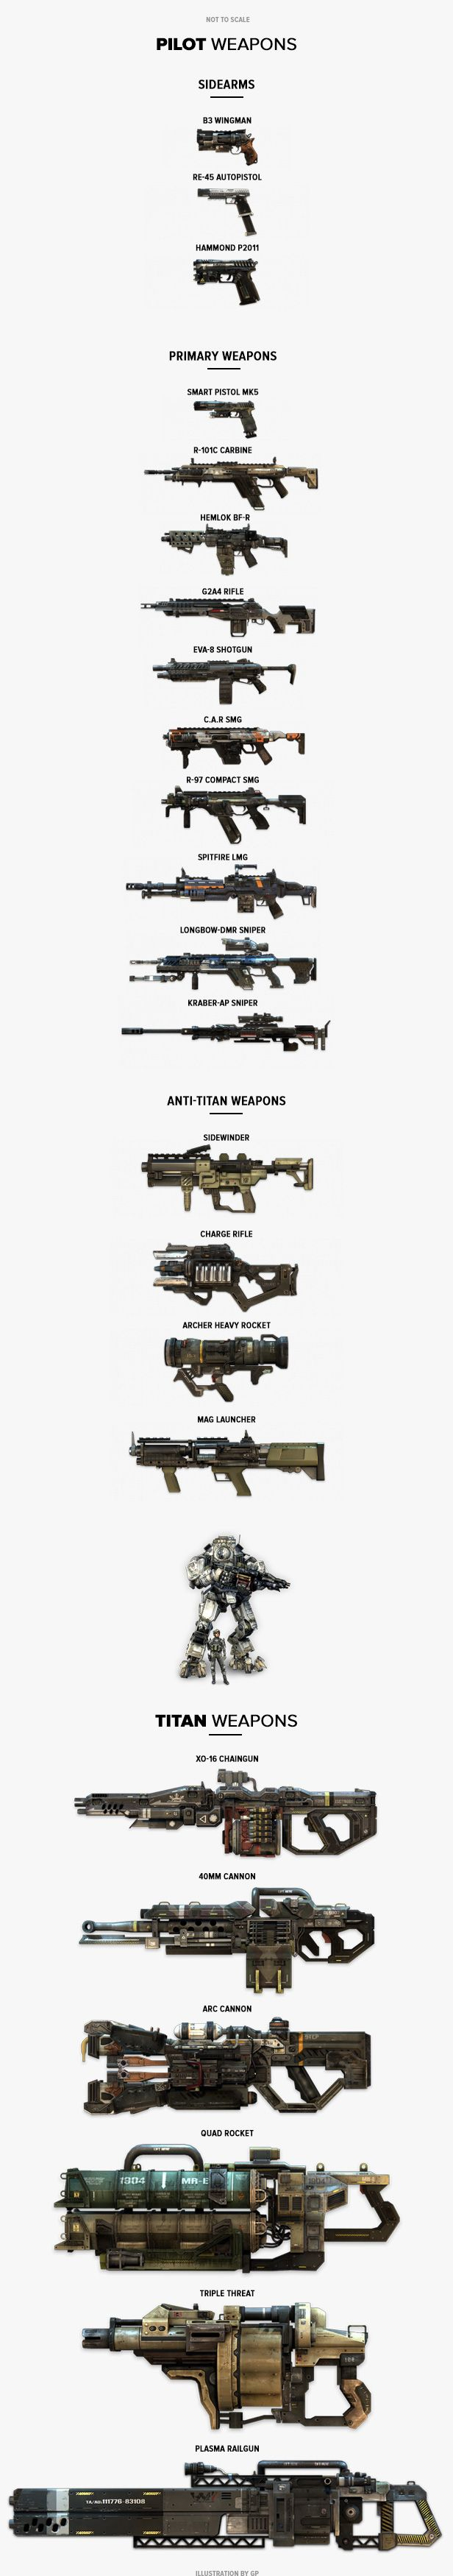 titanfall weapons